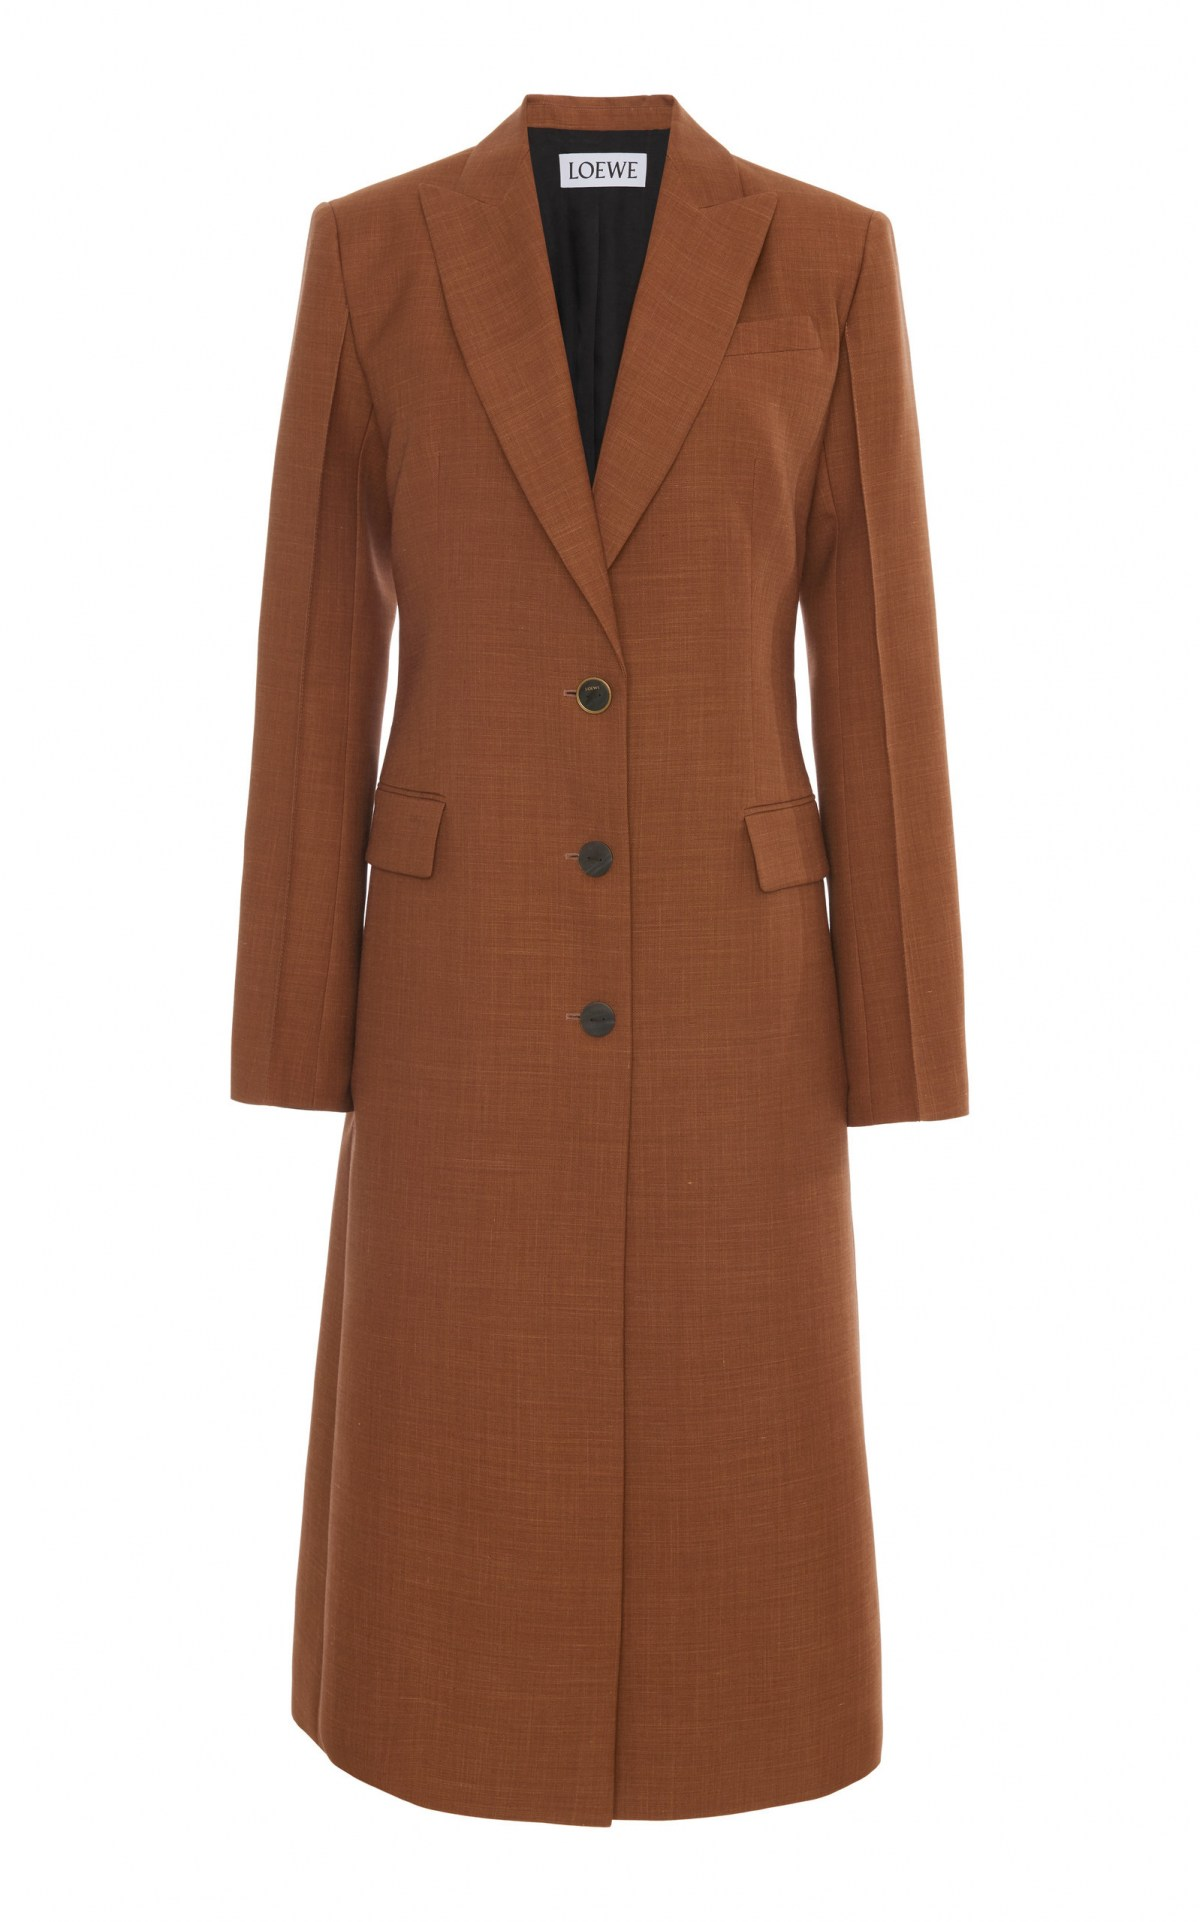 Peaked Wool Overcoat by Loewe, available on modaoperandi.com for $2294 Kaia Gerber Outerwear Exact Product